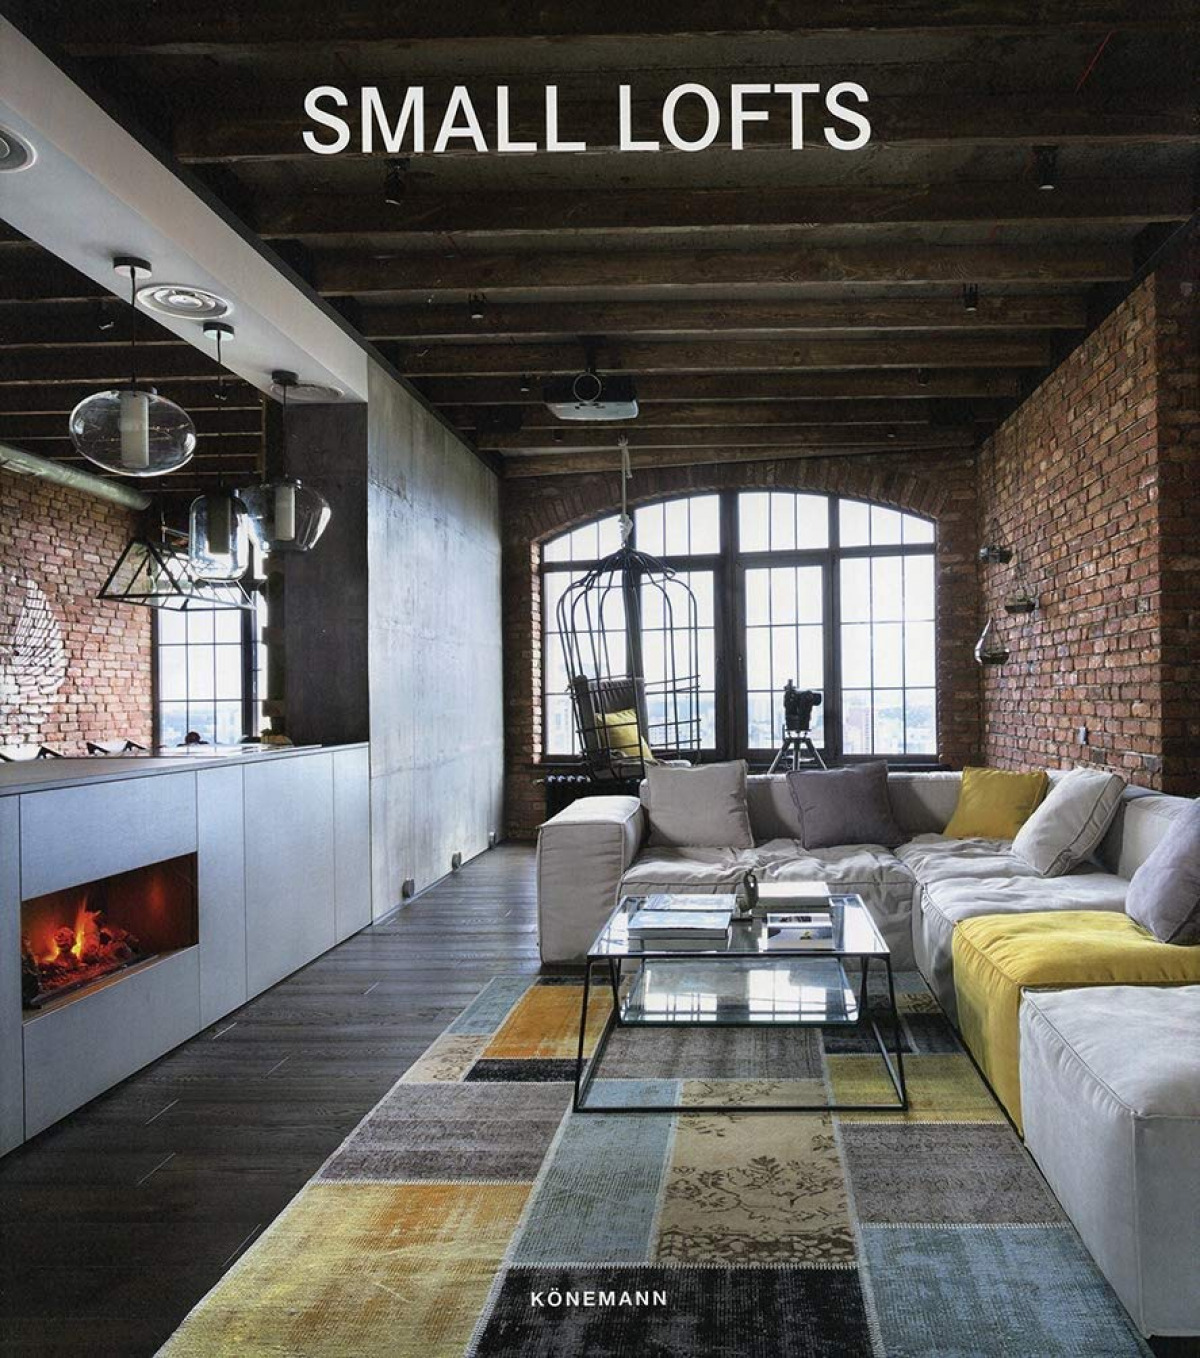 SMALL LOFTS